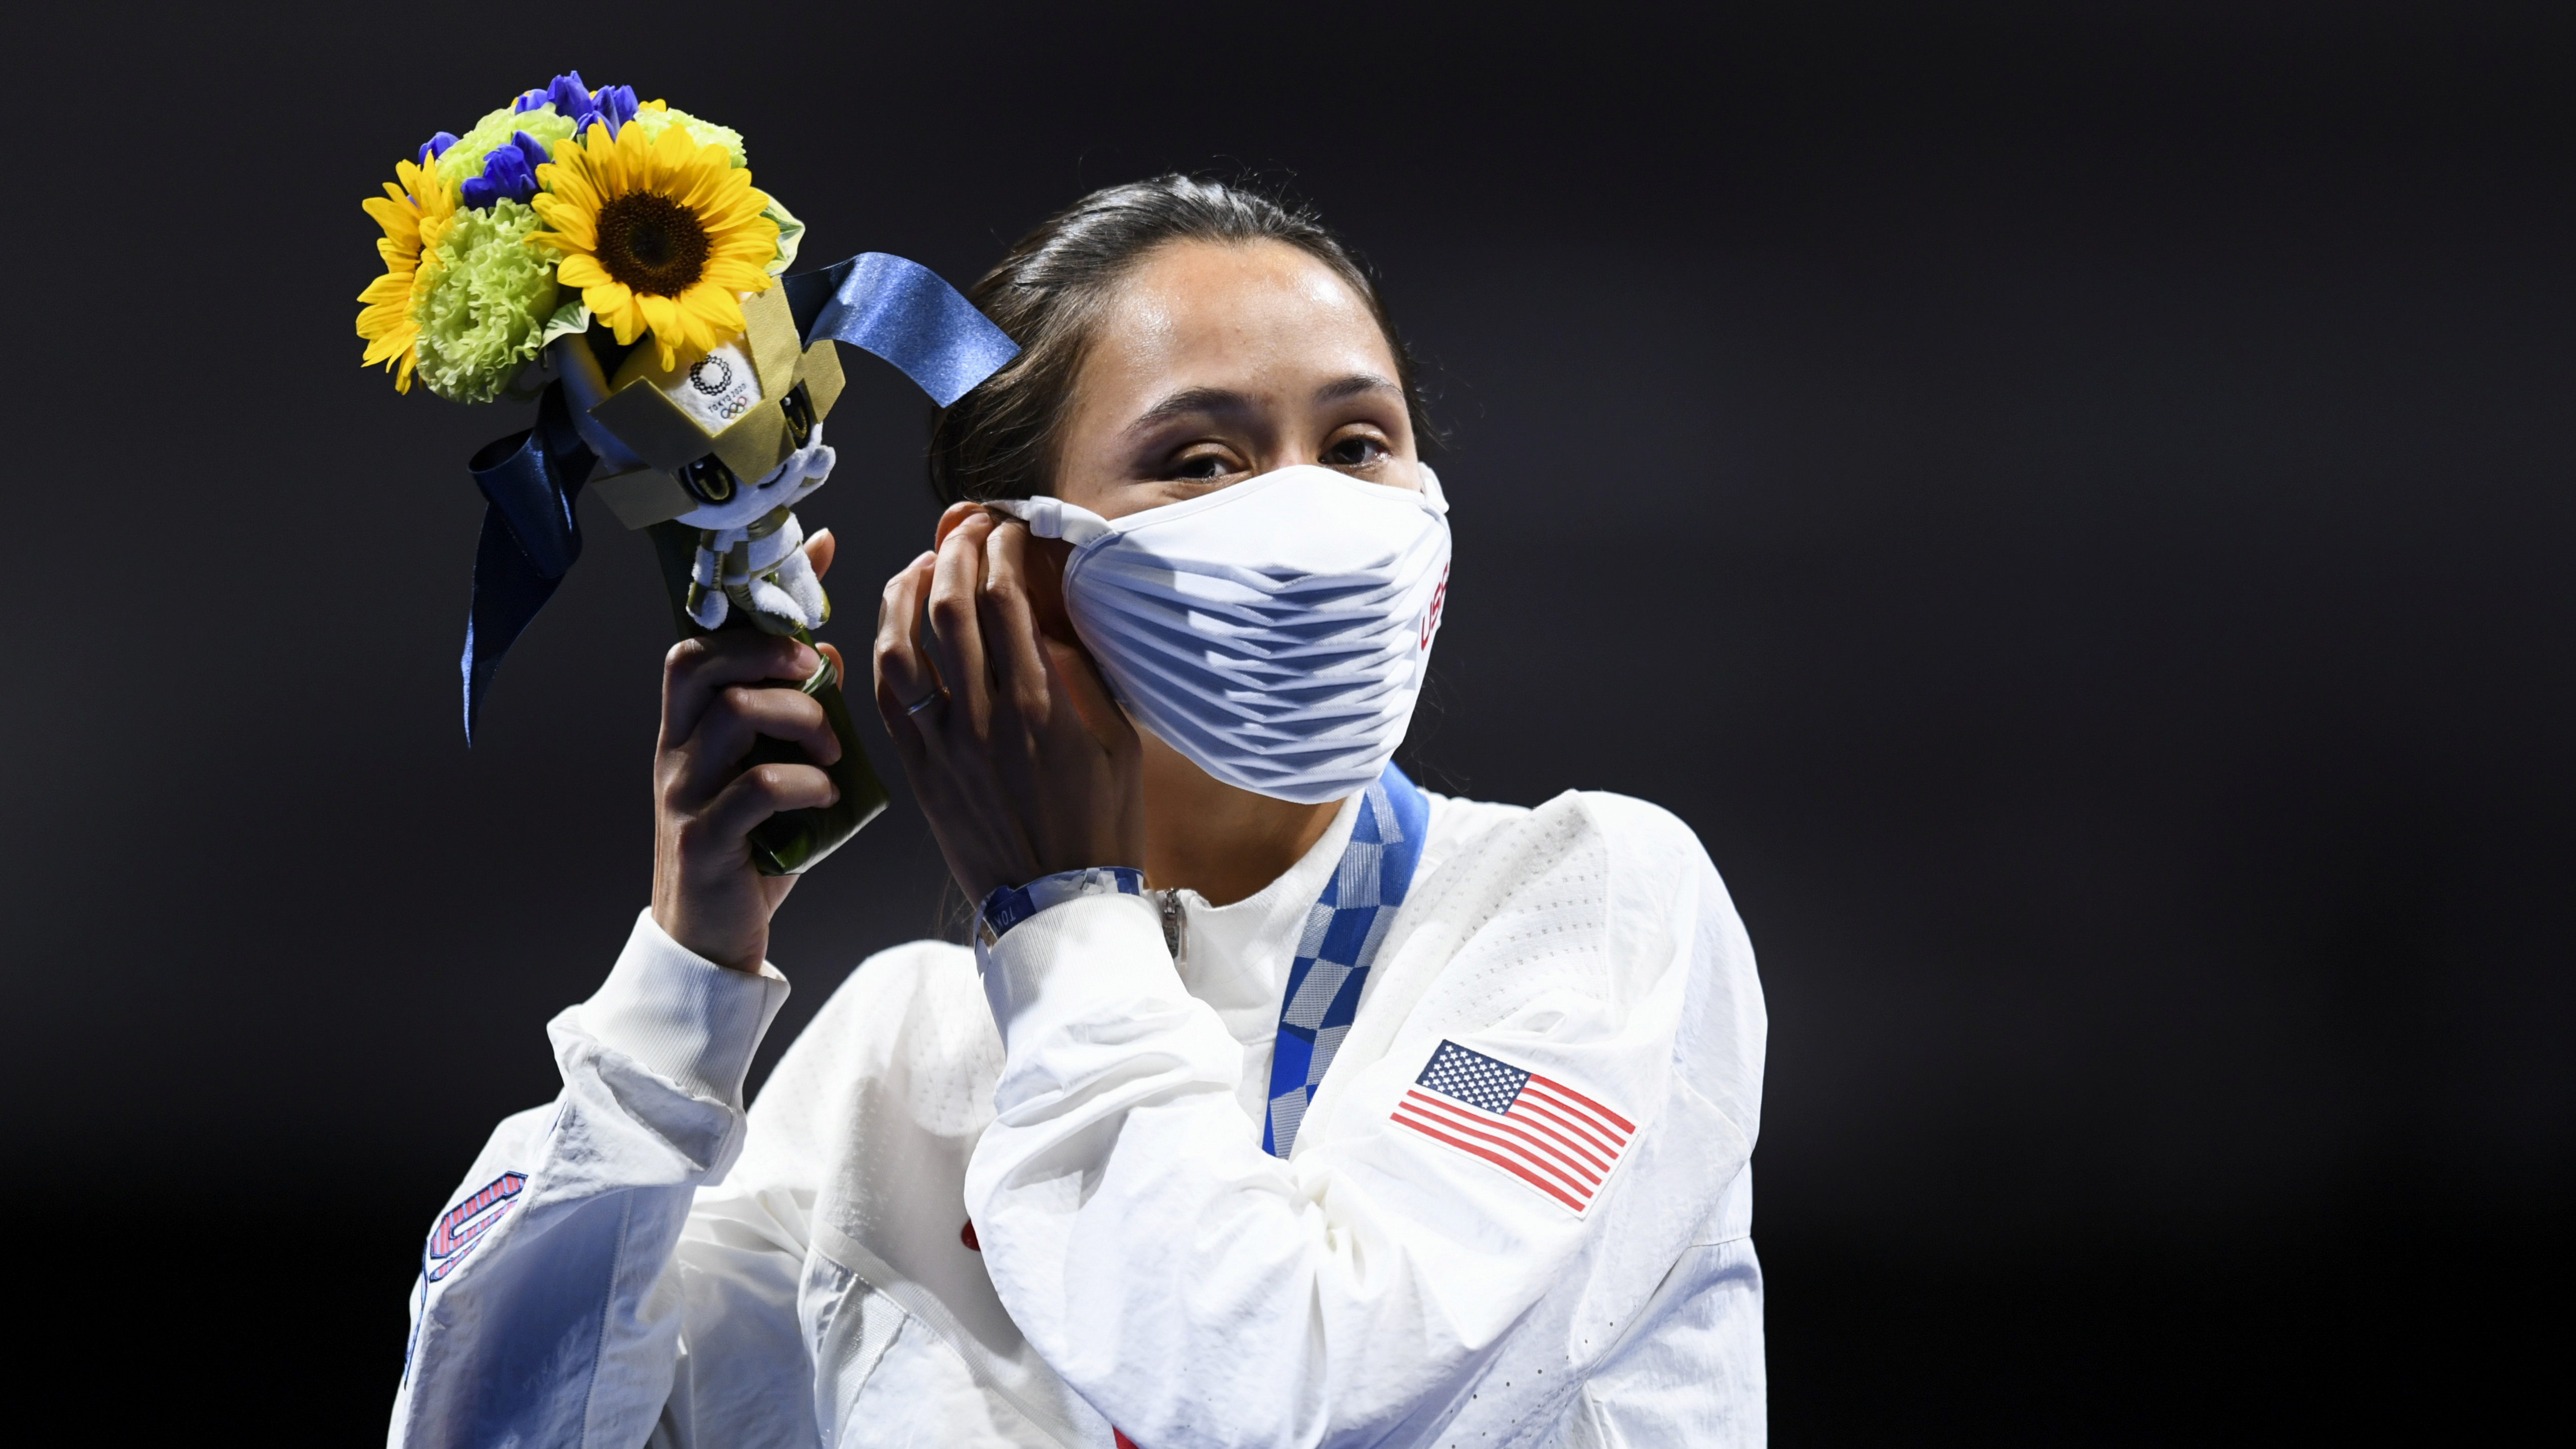 Tokyo 2020 Olympics - Fencing - Women's Individual Foil - Medal Ceremony - Makuhari Messe Hall B - Chiba, Japan - July 25, 2021. Gold medallist Lee Kiefer of the United States celebrates on the podium REUTERS/Annegret Hilse